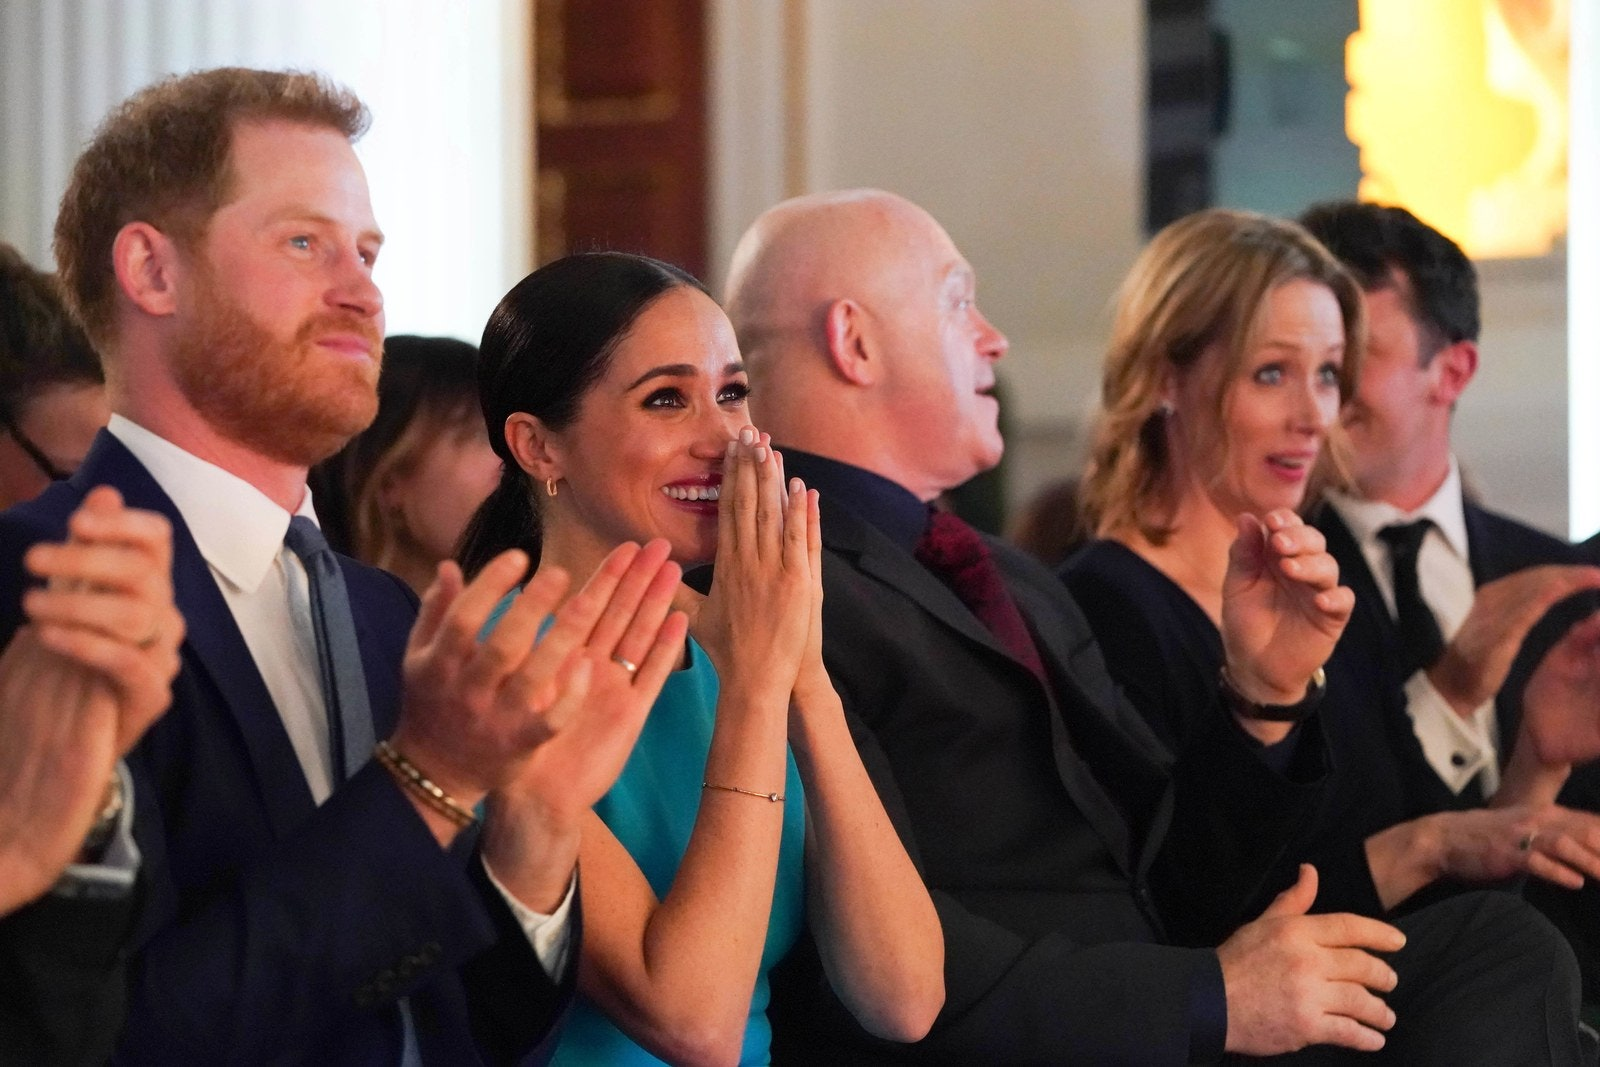 Meghan Markle and Prince Harry at the Endeavor Awards